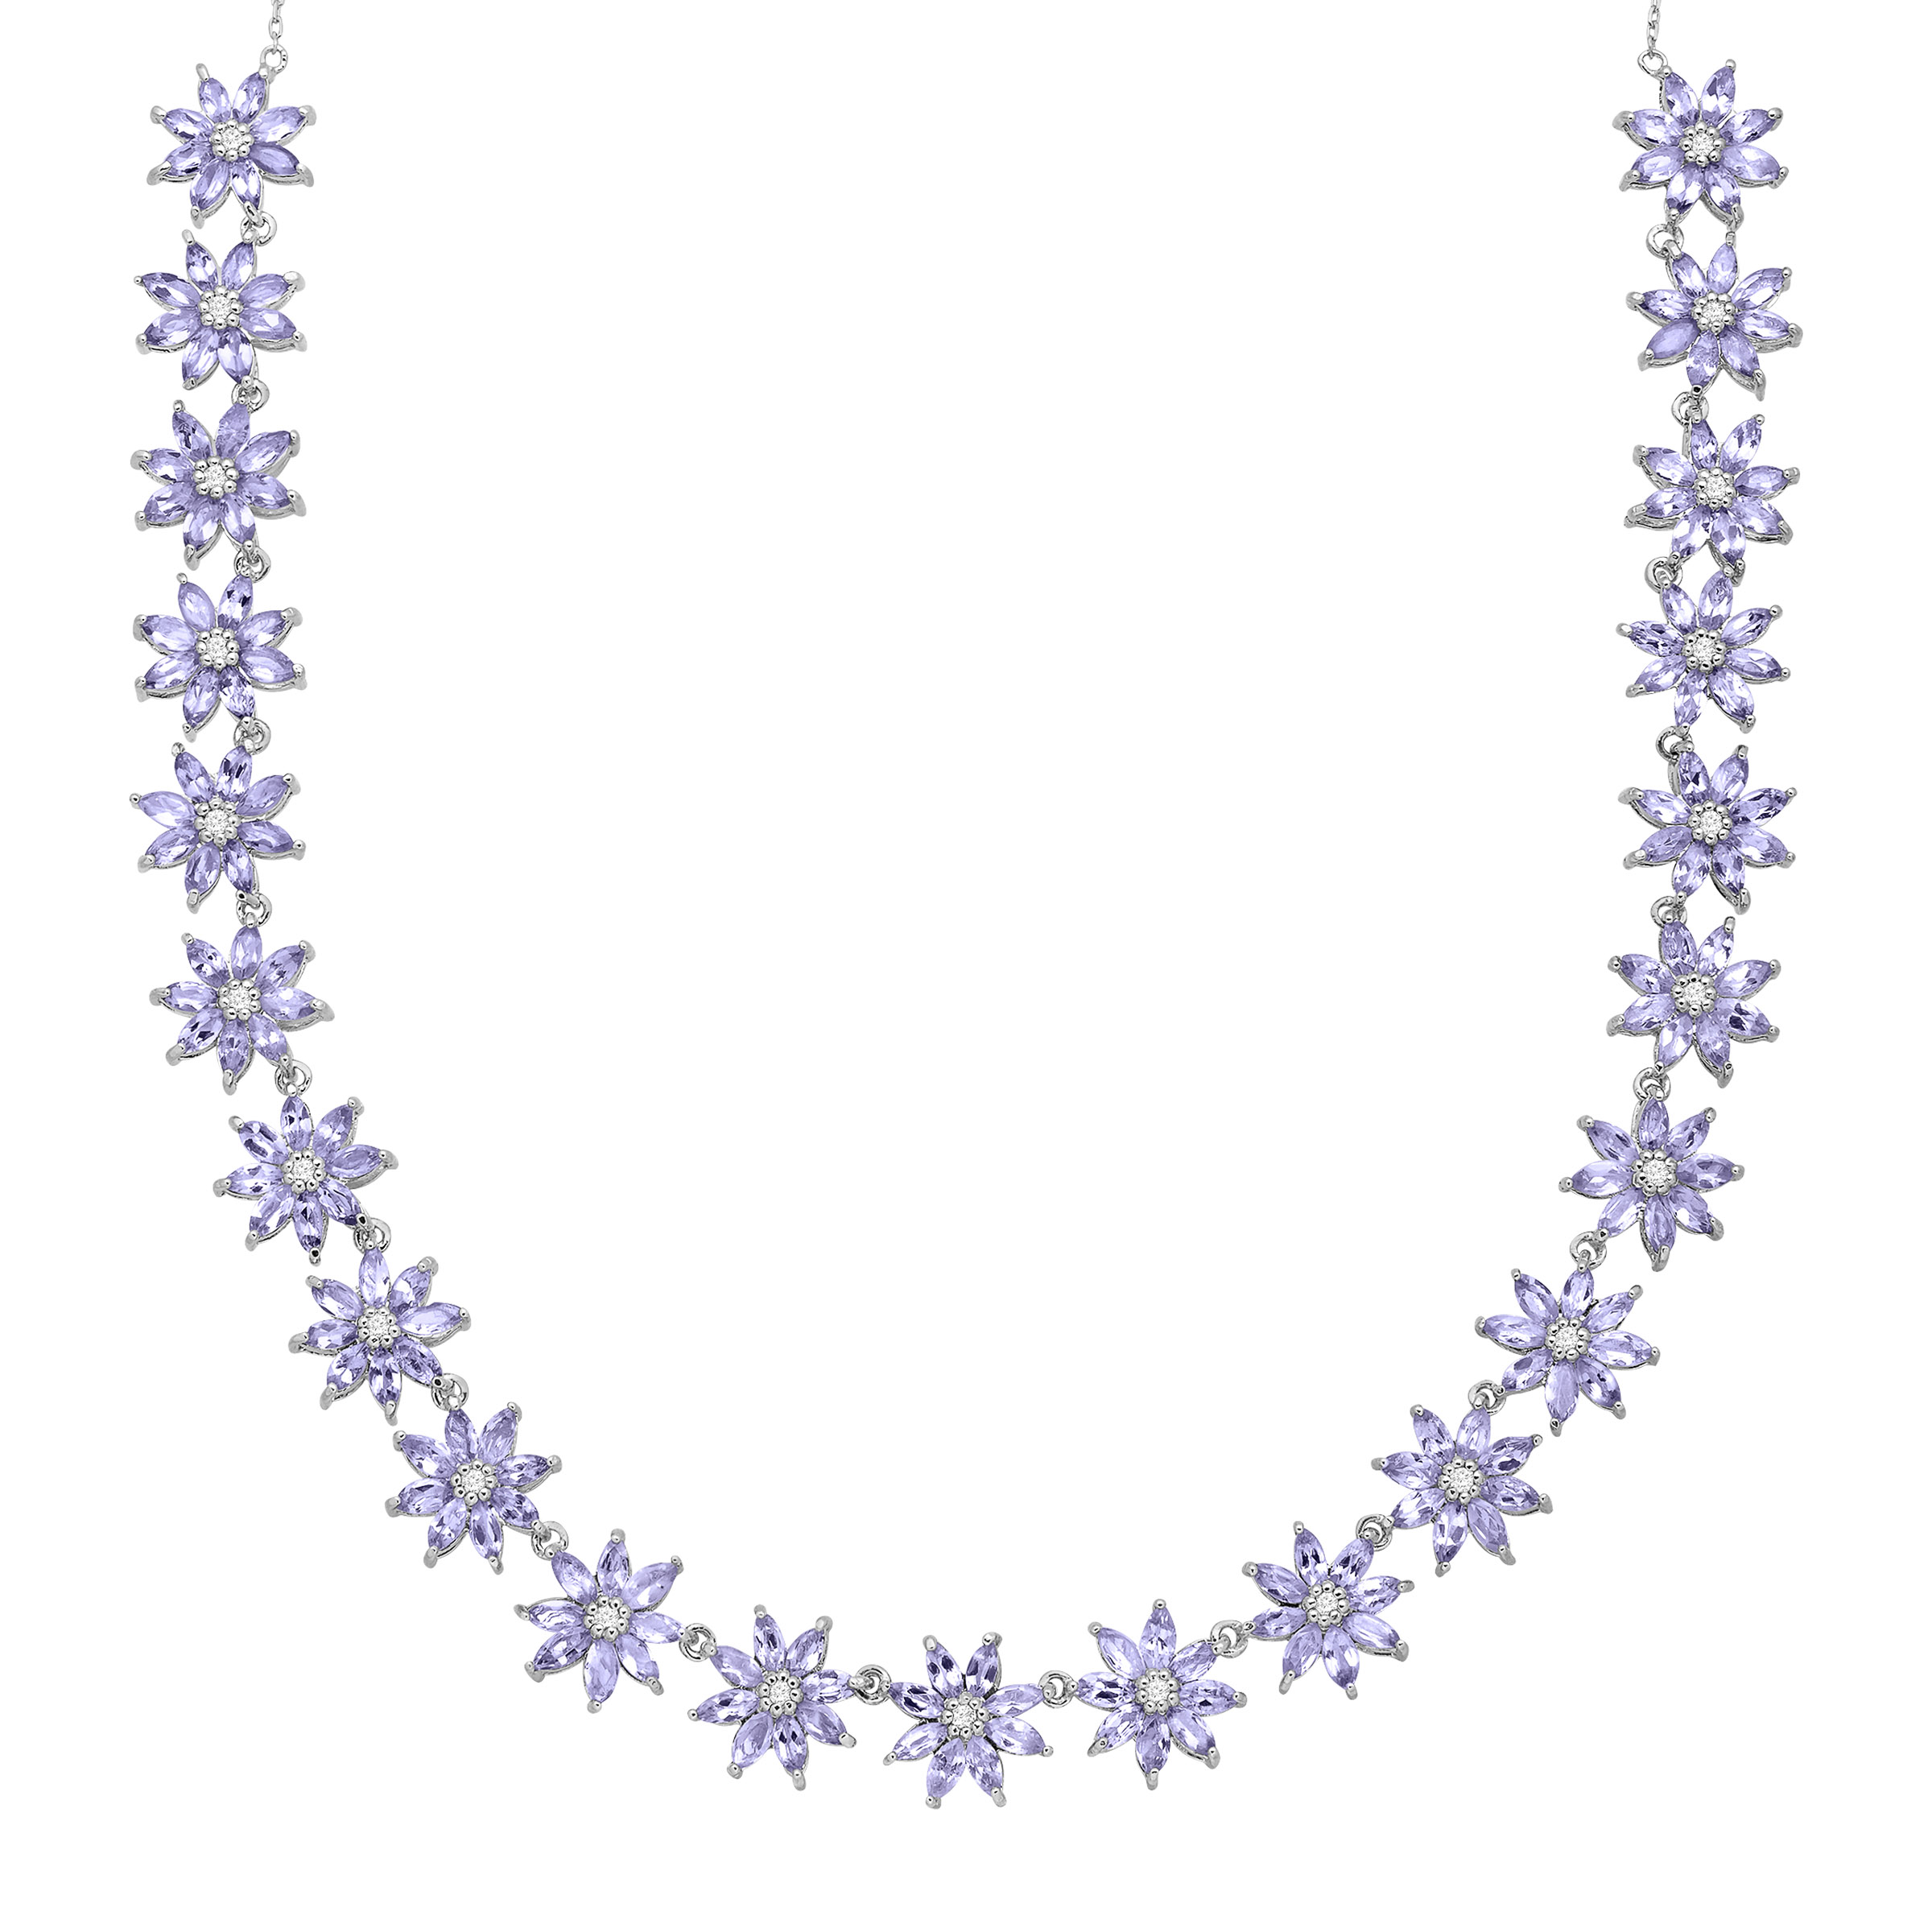 11 ct Natural Tanzanite & Natural White Topaz Floral Necklace in Sterling Silver by Richline Group